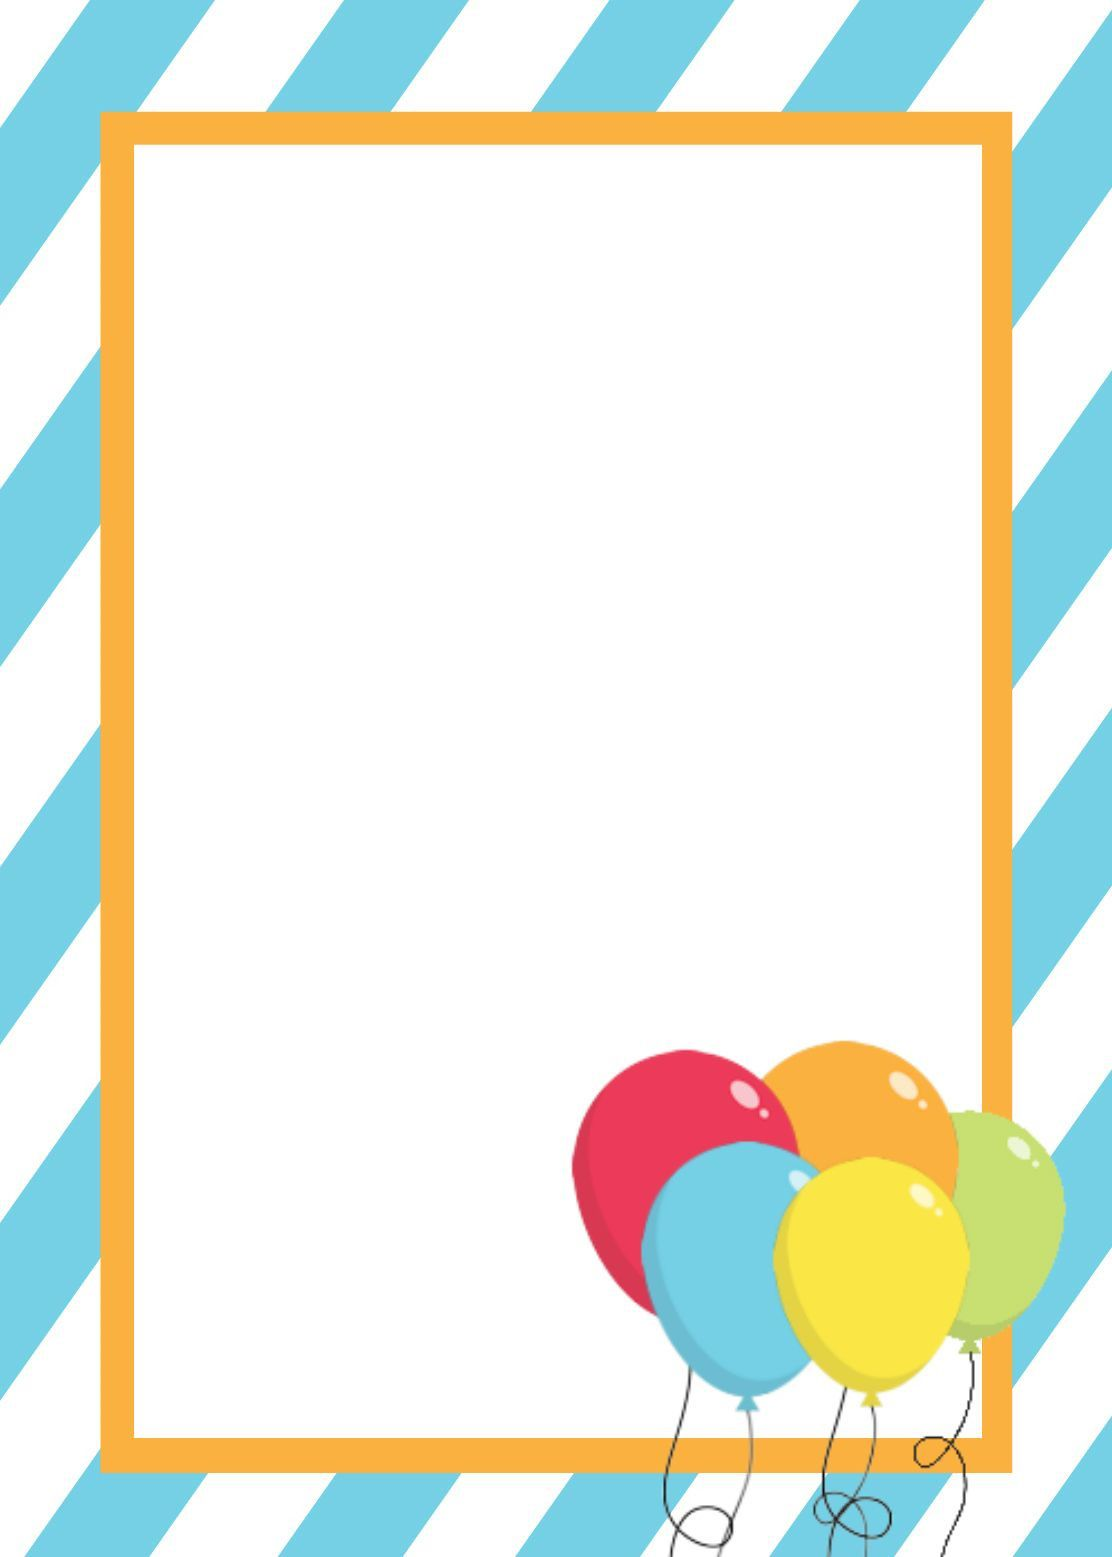 001 Incredible Free Birthday Party Invitation Template For Word Idea Full